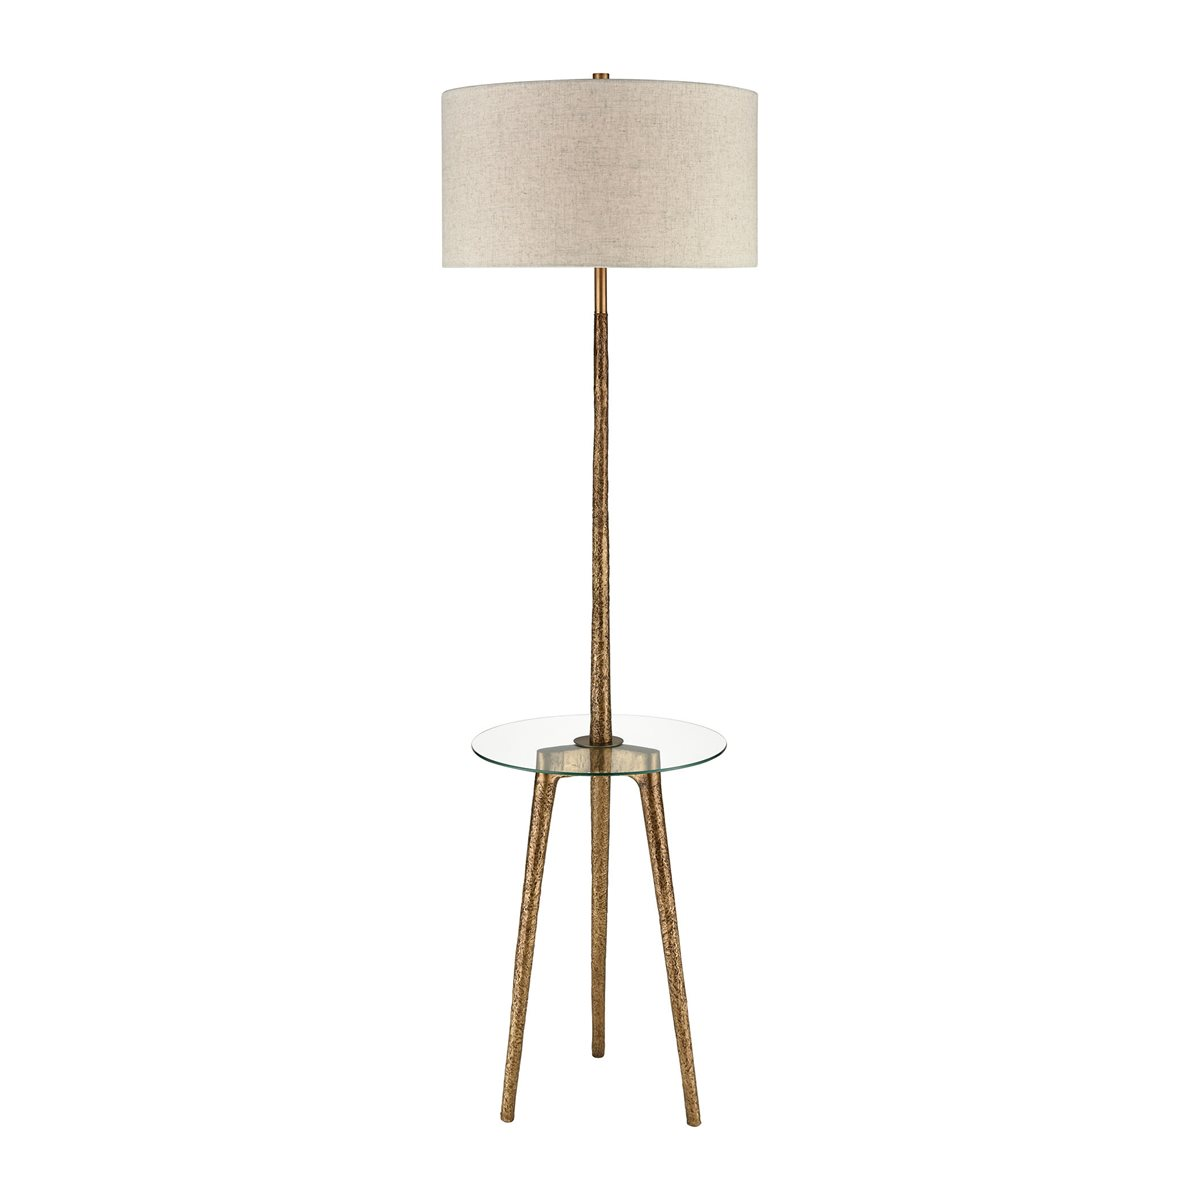 Timbuktu Floor Lamp